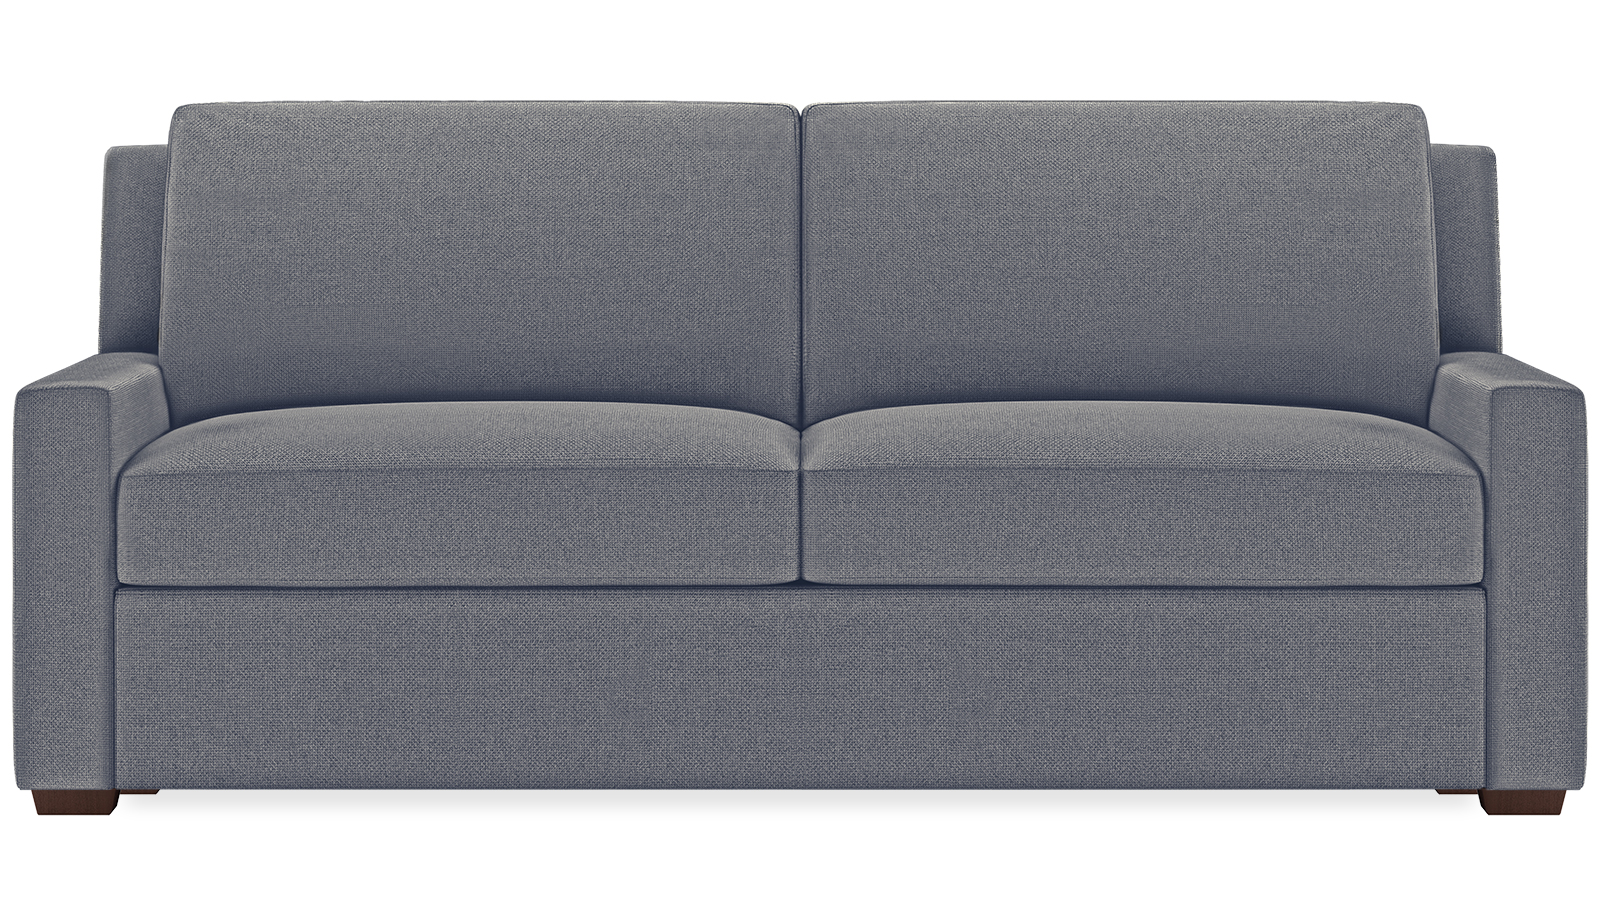 american leather lyons sleeper sofa